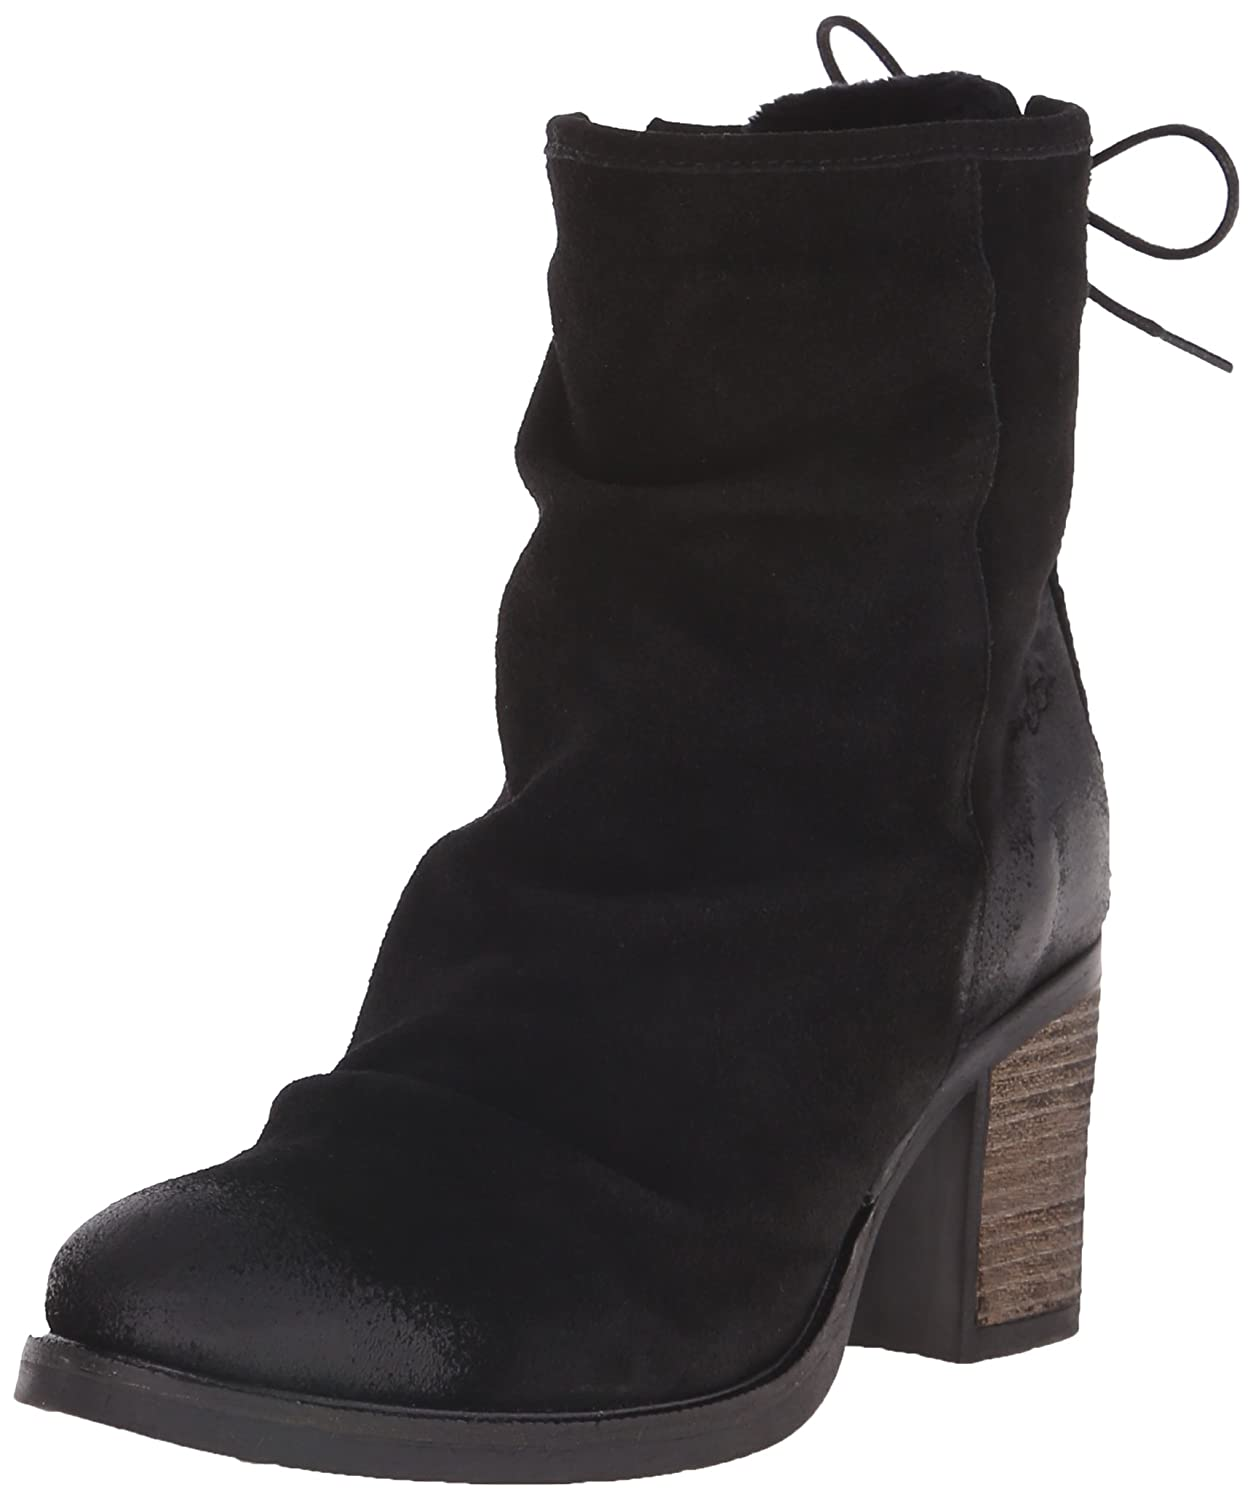 Bos. & Co. Women's Barlow Boot B00VMUOVFC 37 EU/6-6.5 M US|Black Oil Suede